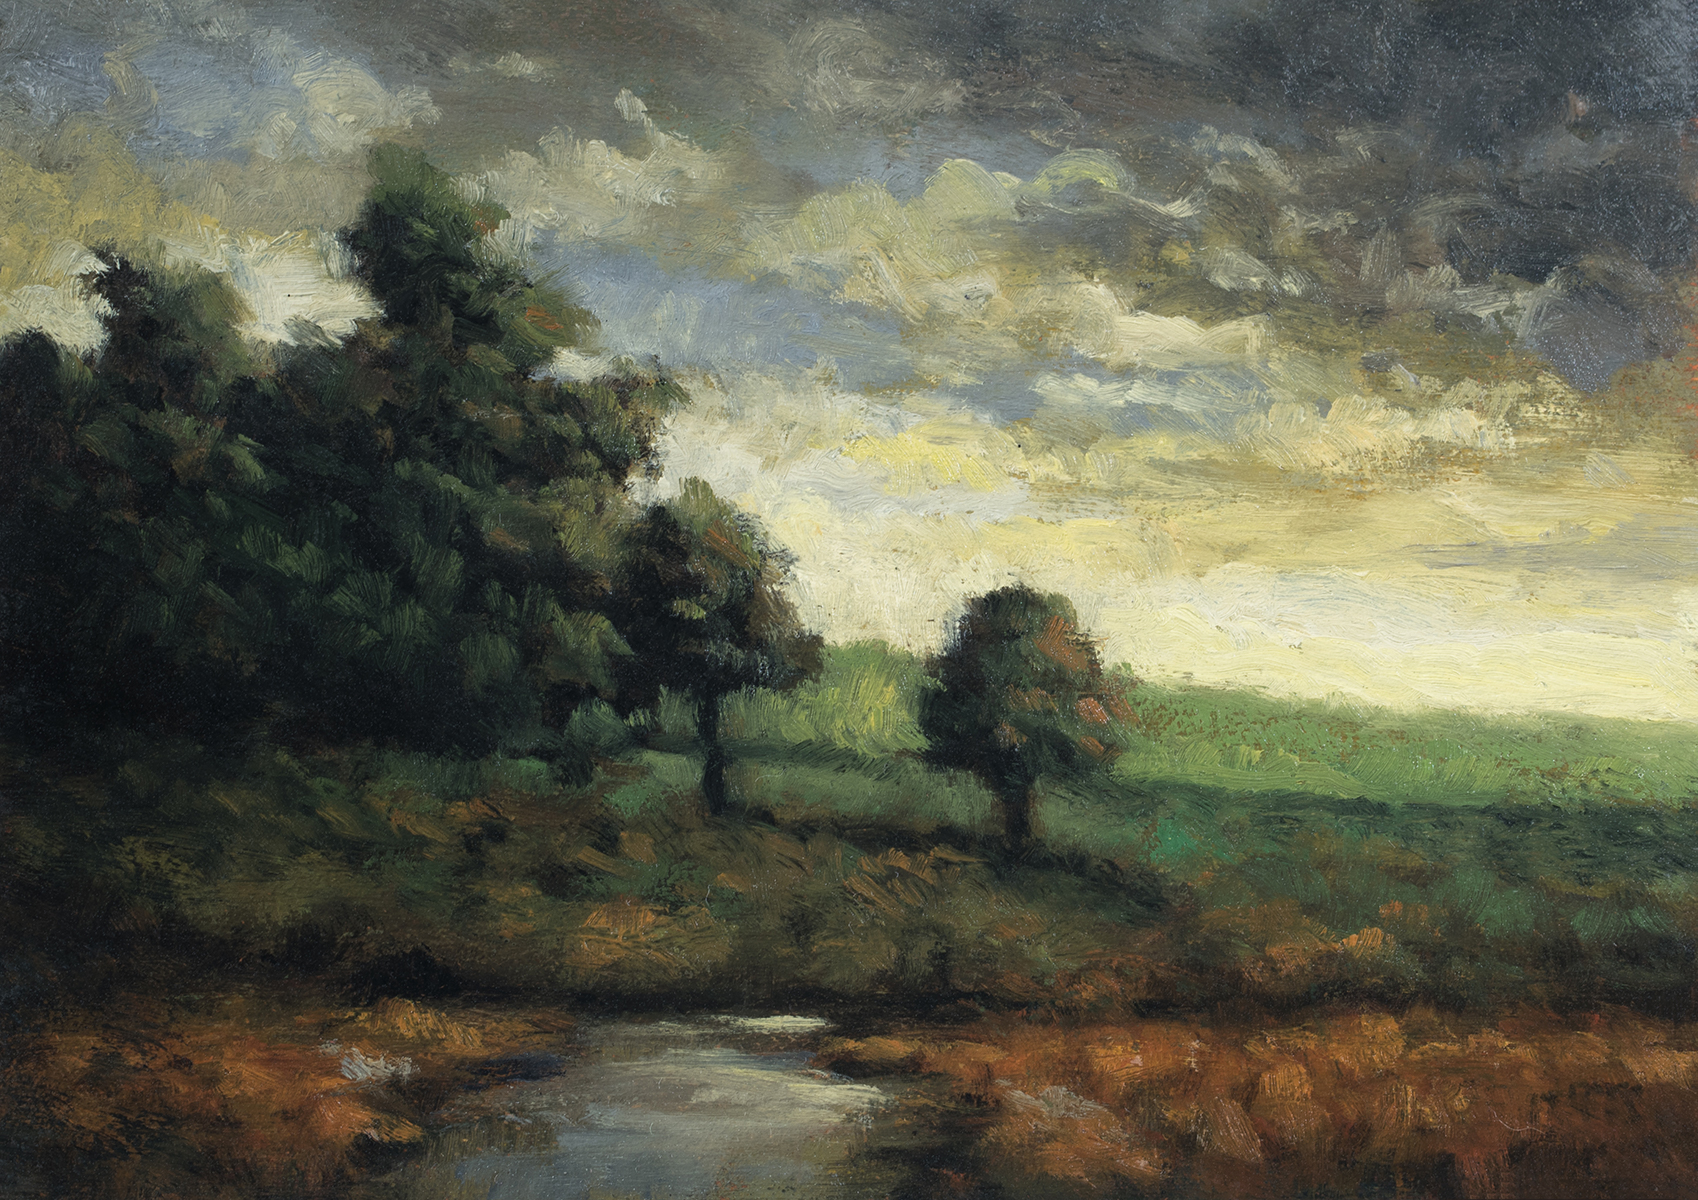 Morning Glowby M Francis McCarthy - 5x7 Oil on Wood Panel